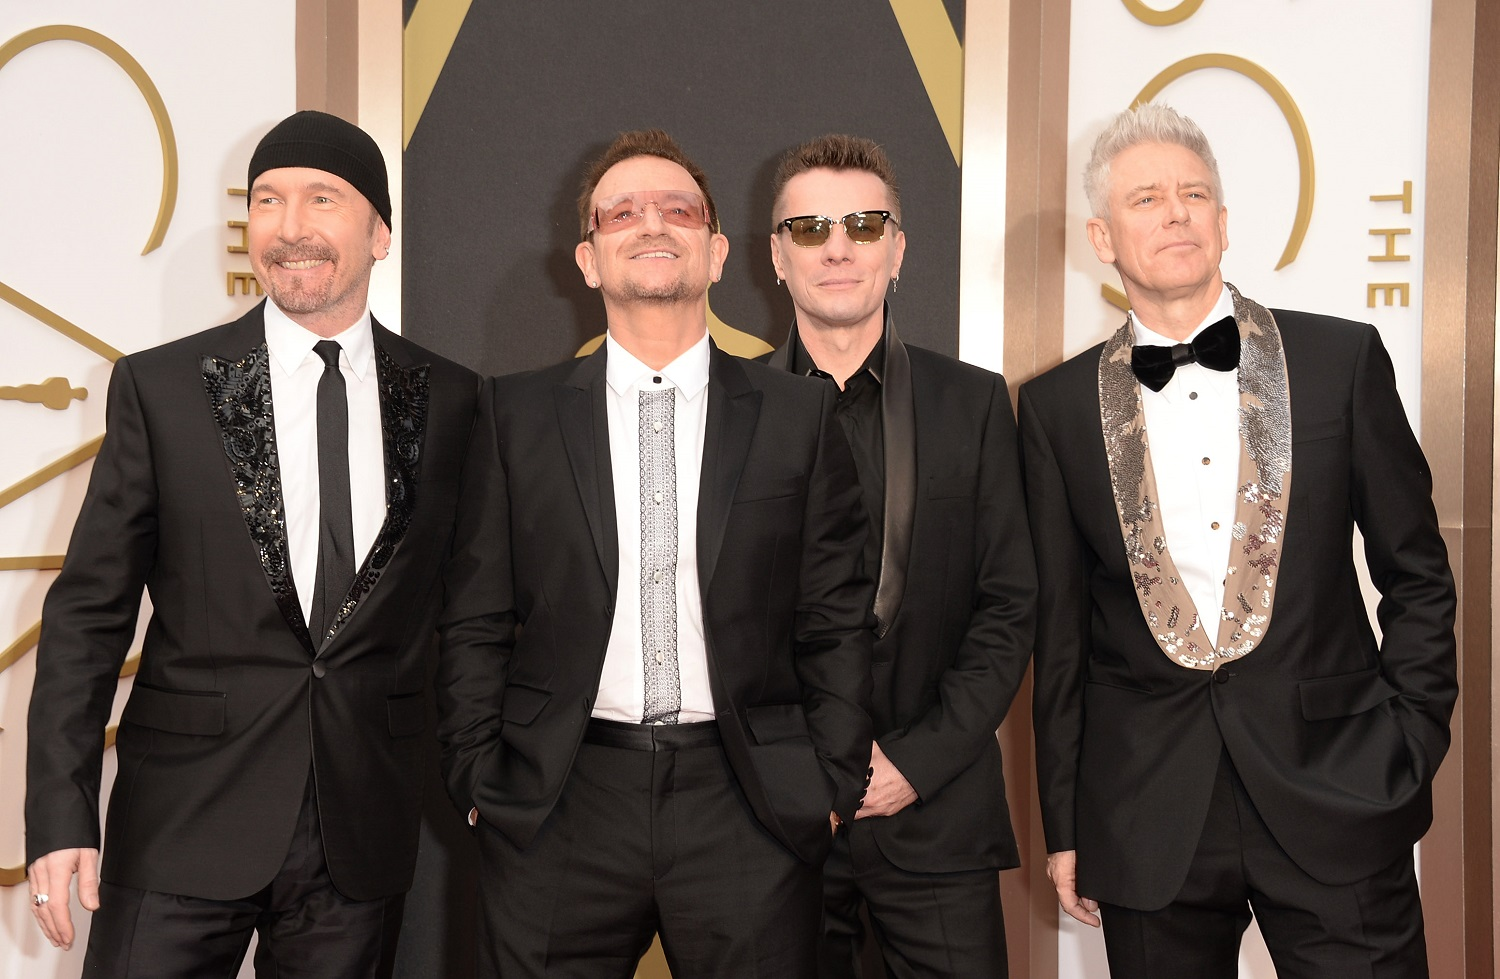 U2 estrena su esperado álbum 'Songs of Experience'